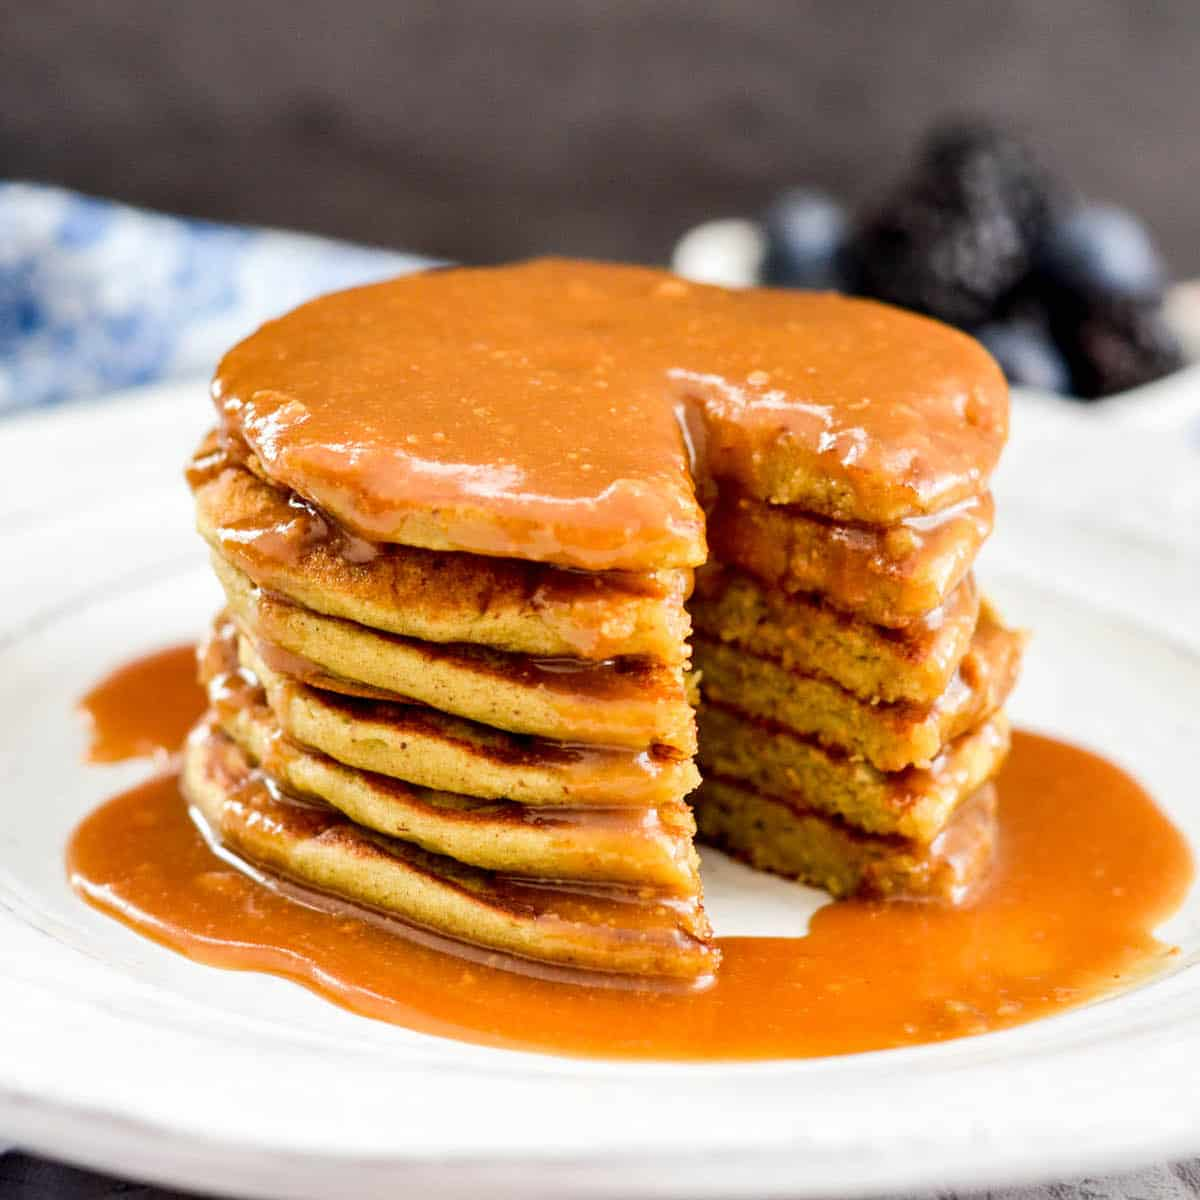 A stack of six Zucchini Banana Pancakes with a bite taken out of it